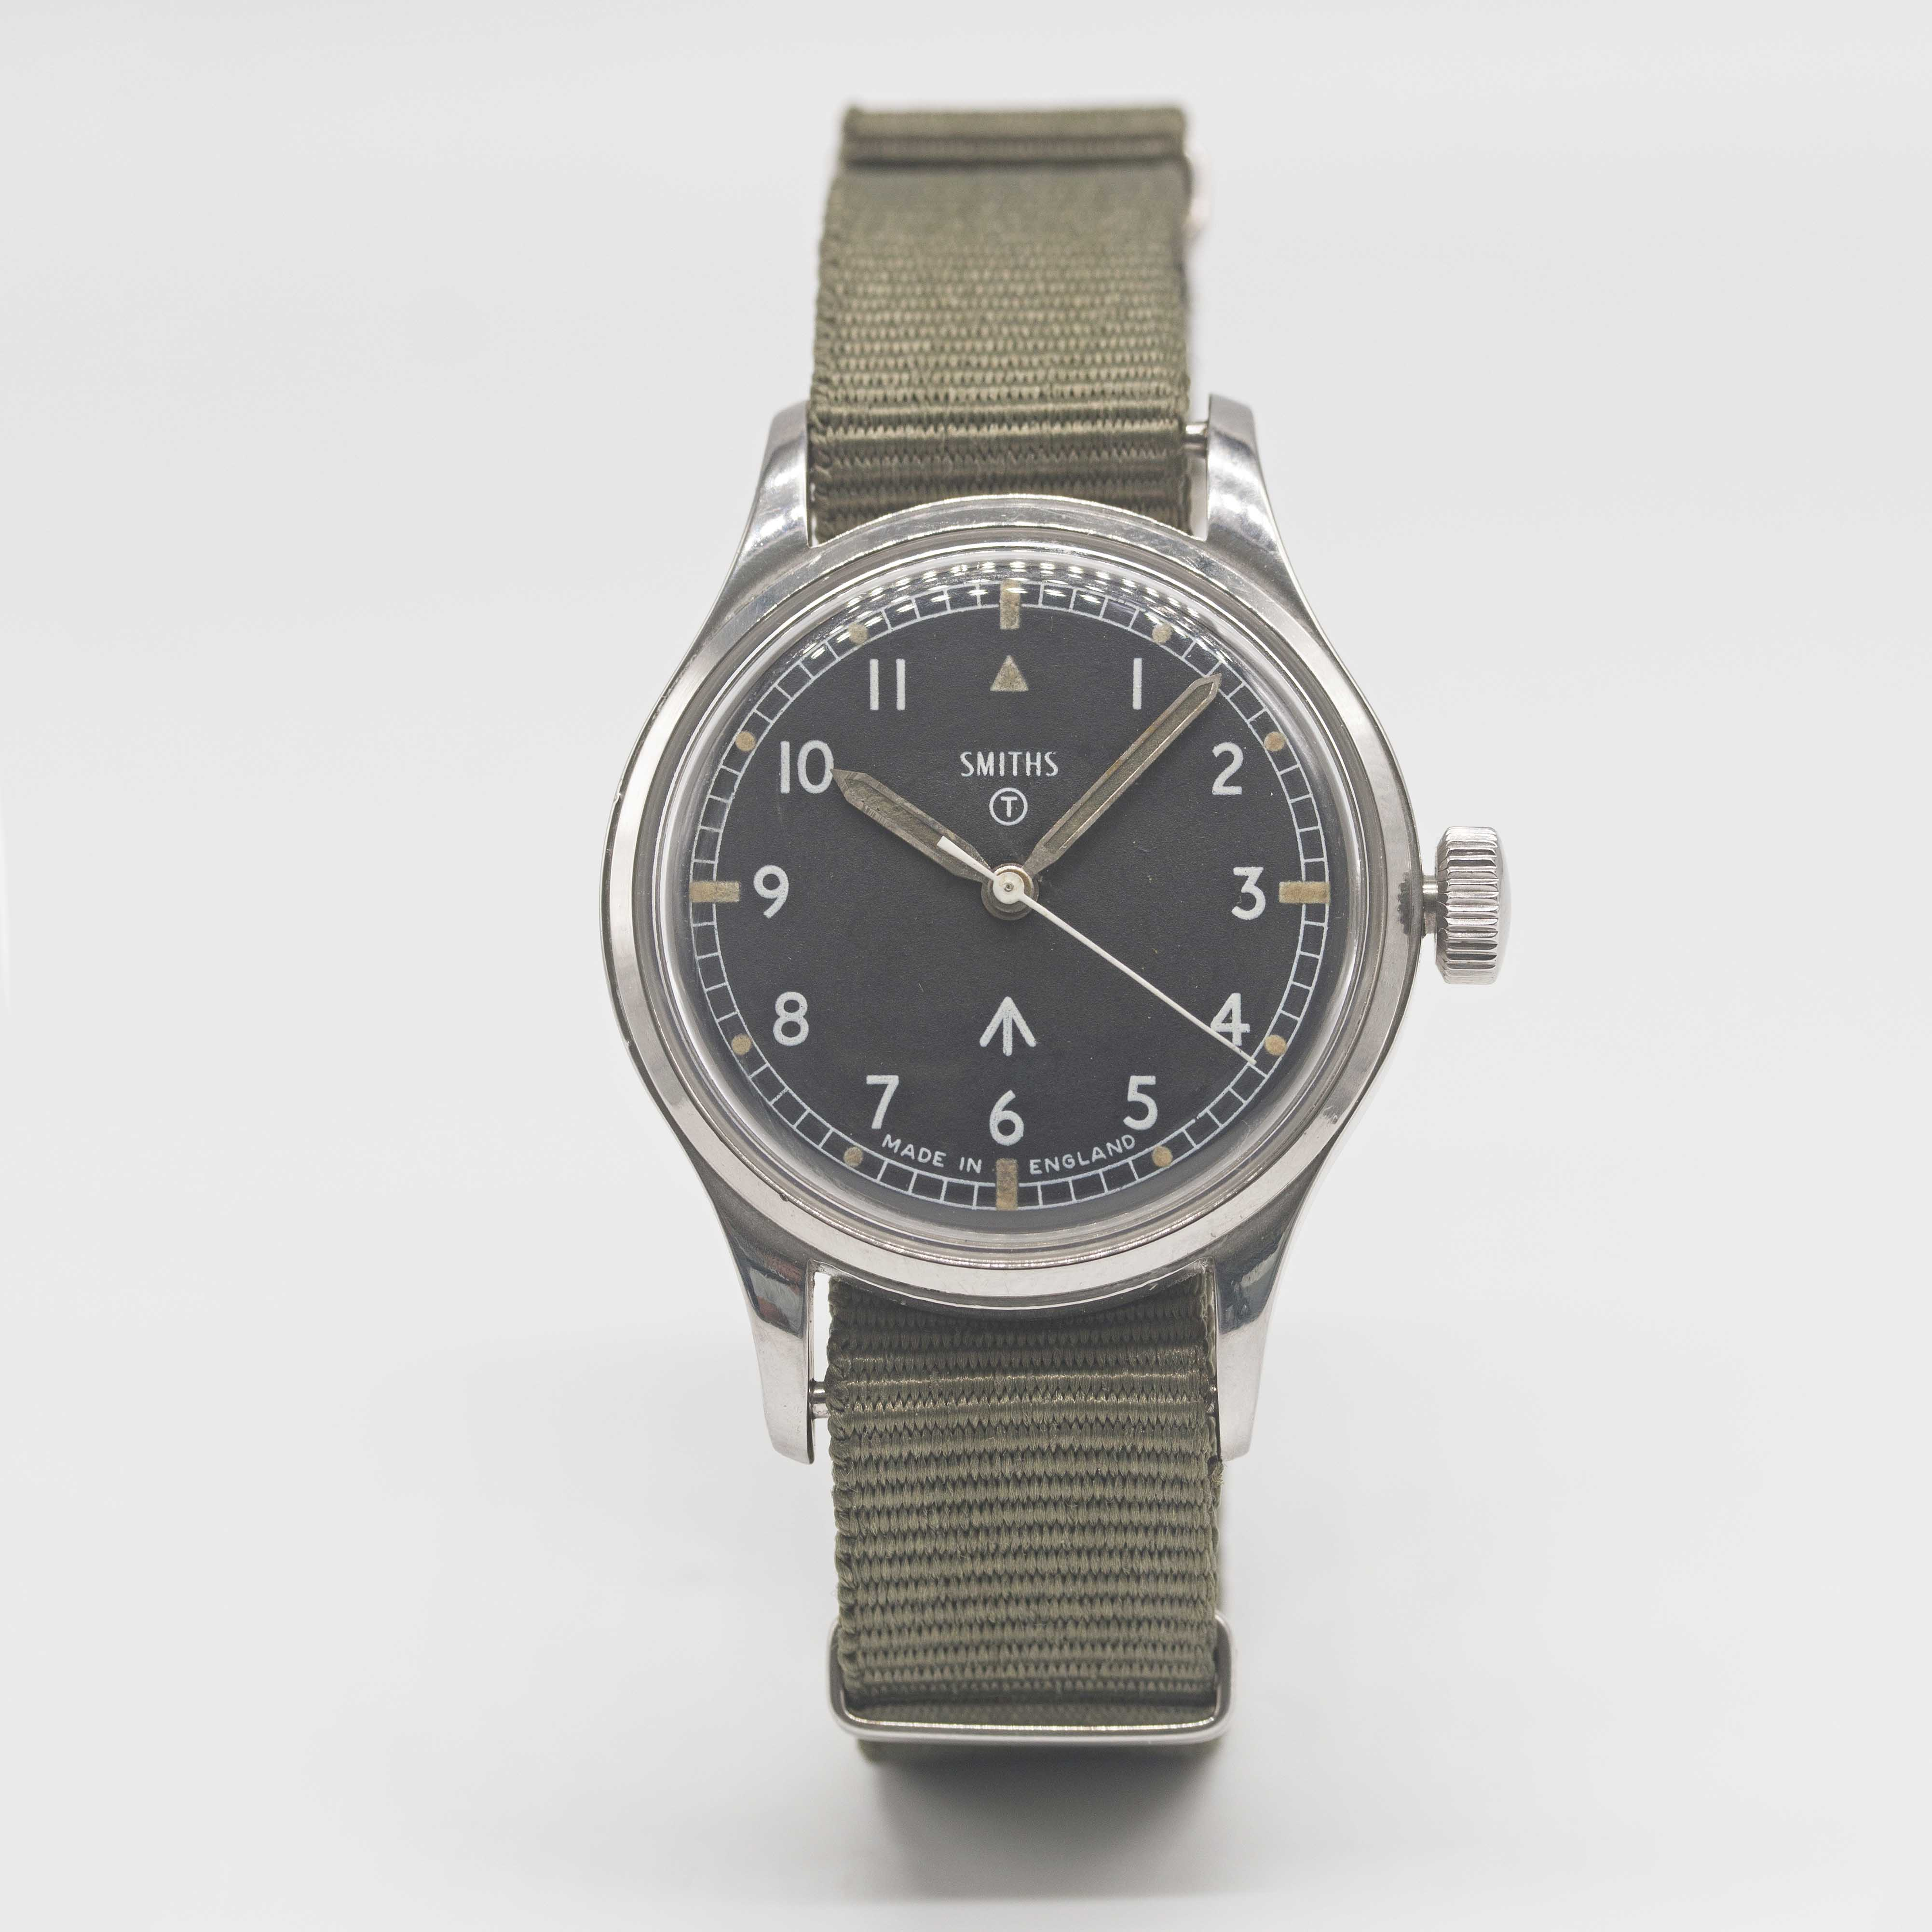 Lot 33 - A GENTLEMAN'S STAINLESS STEEL BRITISH MILITARY SMITHS WRIST WATCH DATED 1970 Movement:17J, manual